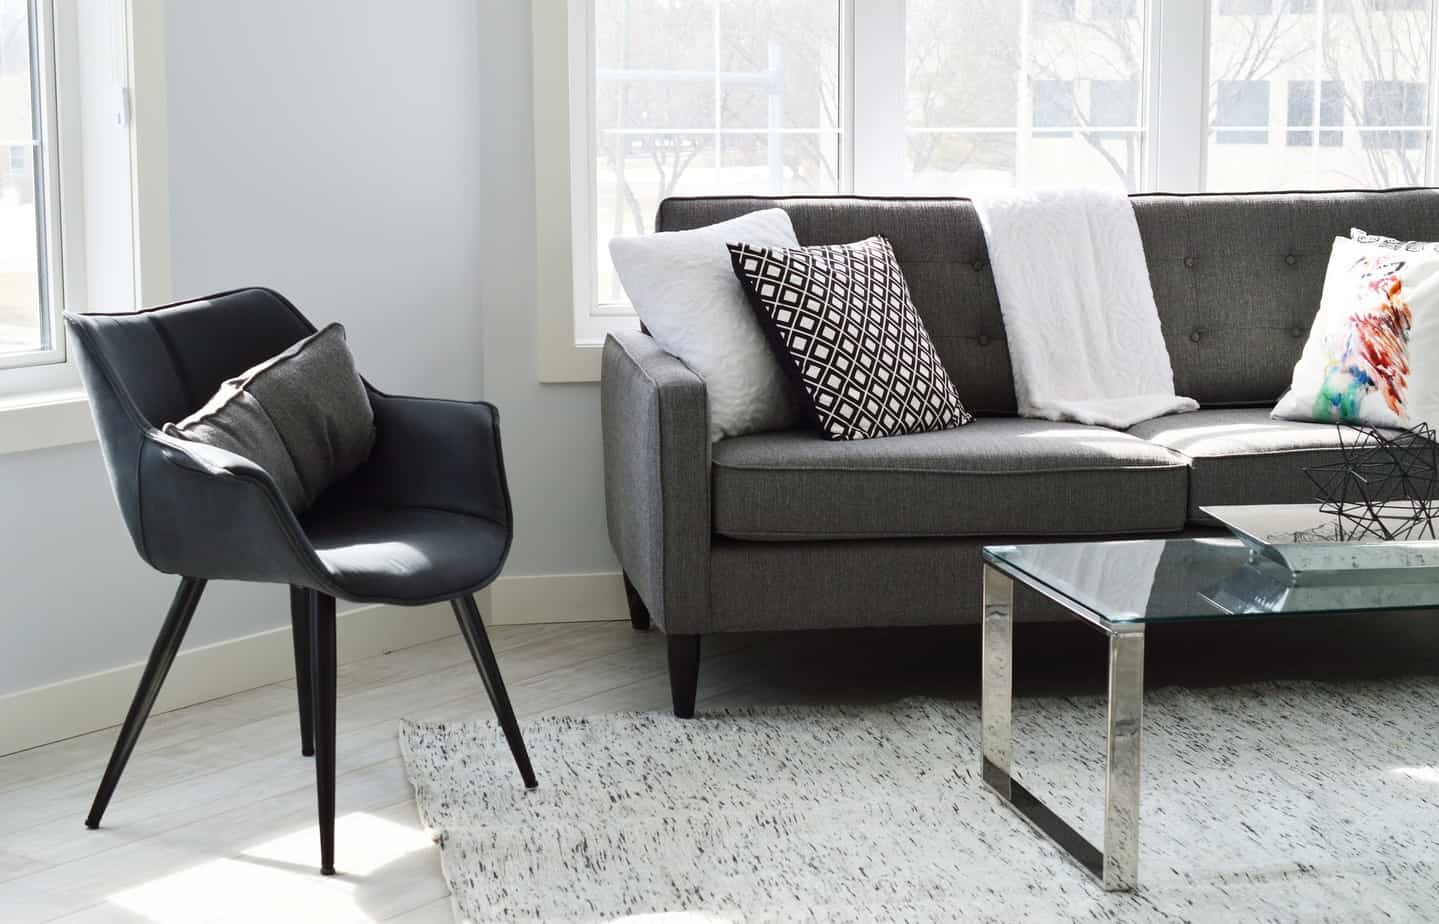 3 Home Decorating Tips to improve your home